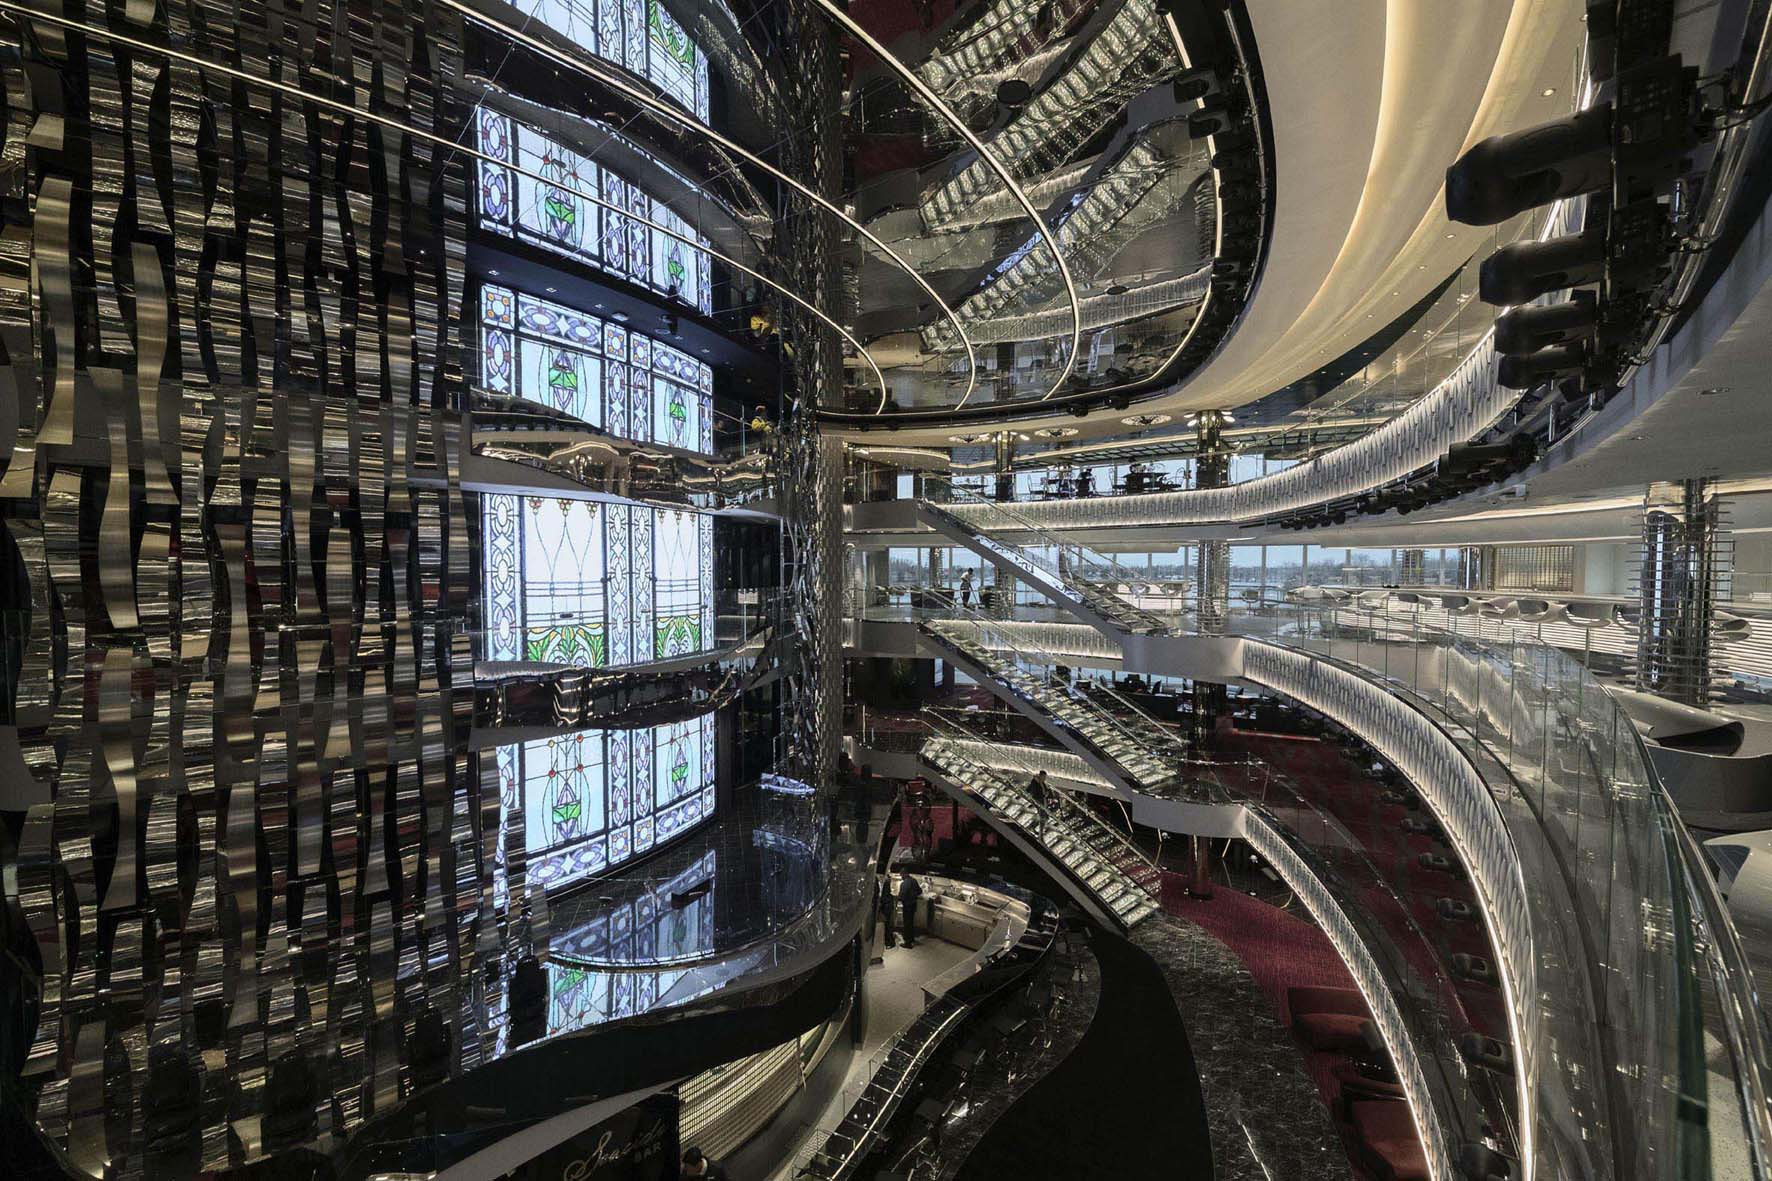 MSC Seaside - The stunning atrium at the heart of the ship acts as the social hub